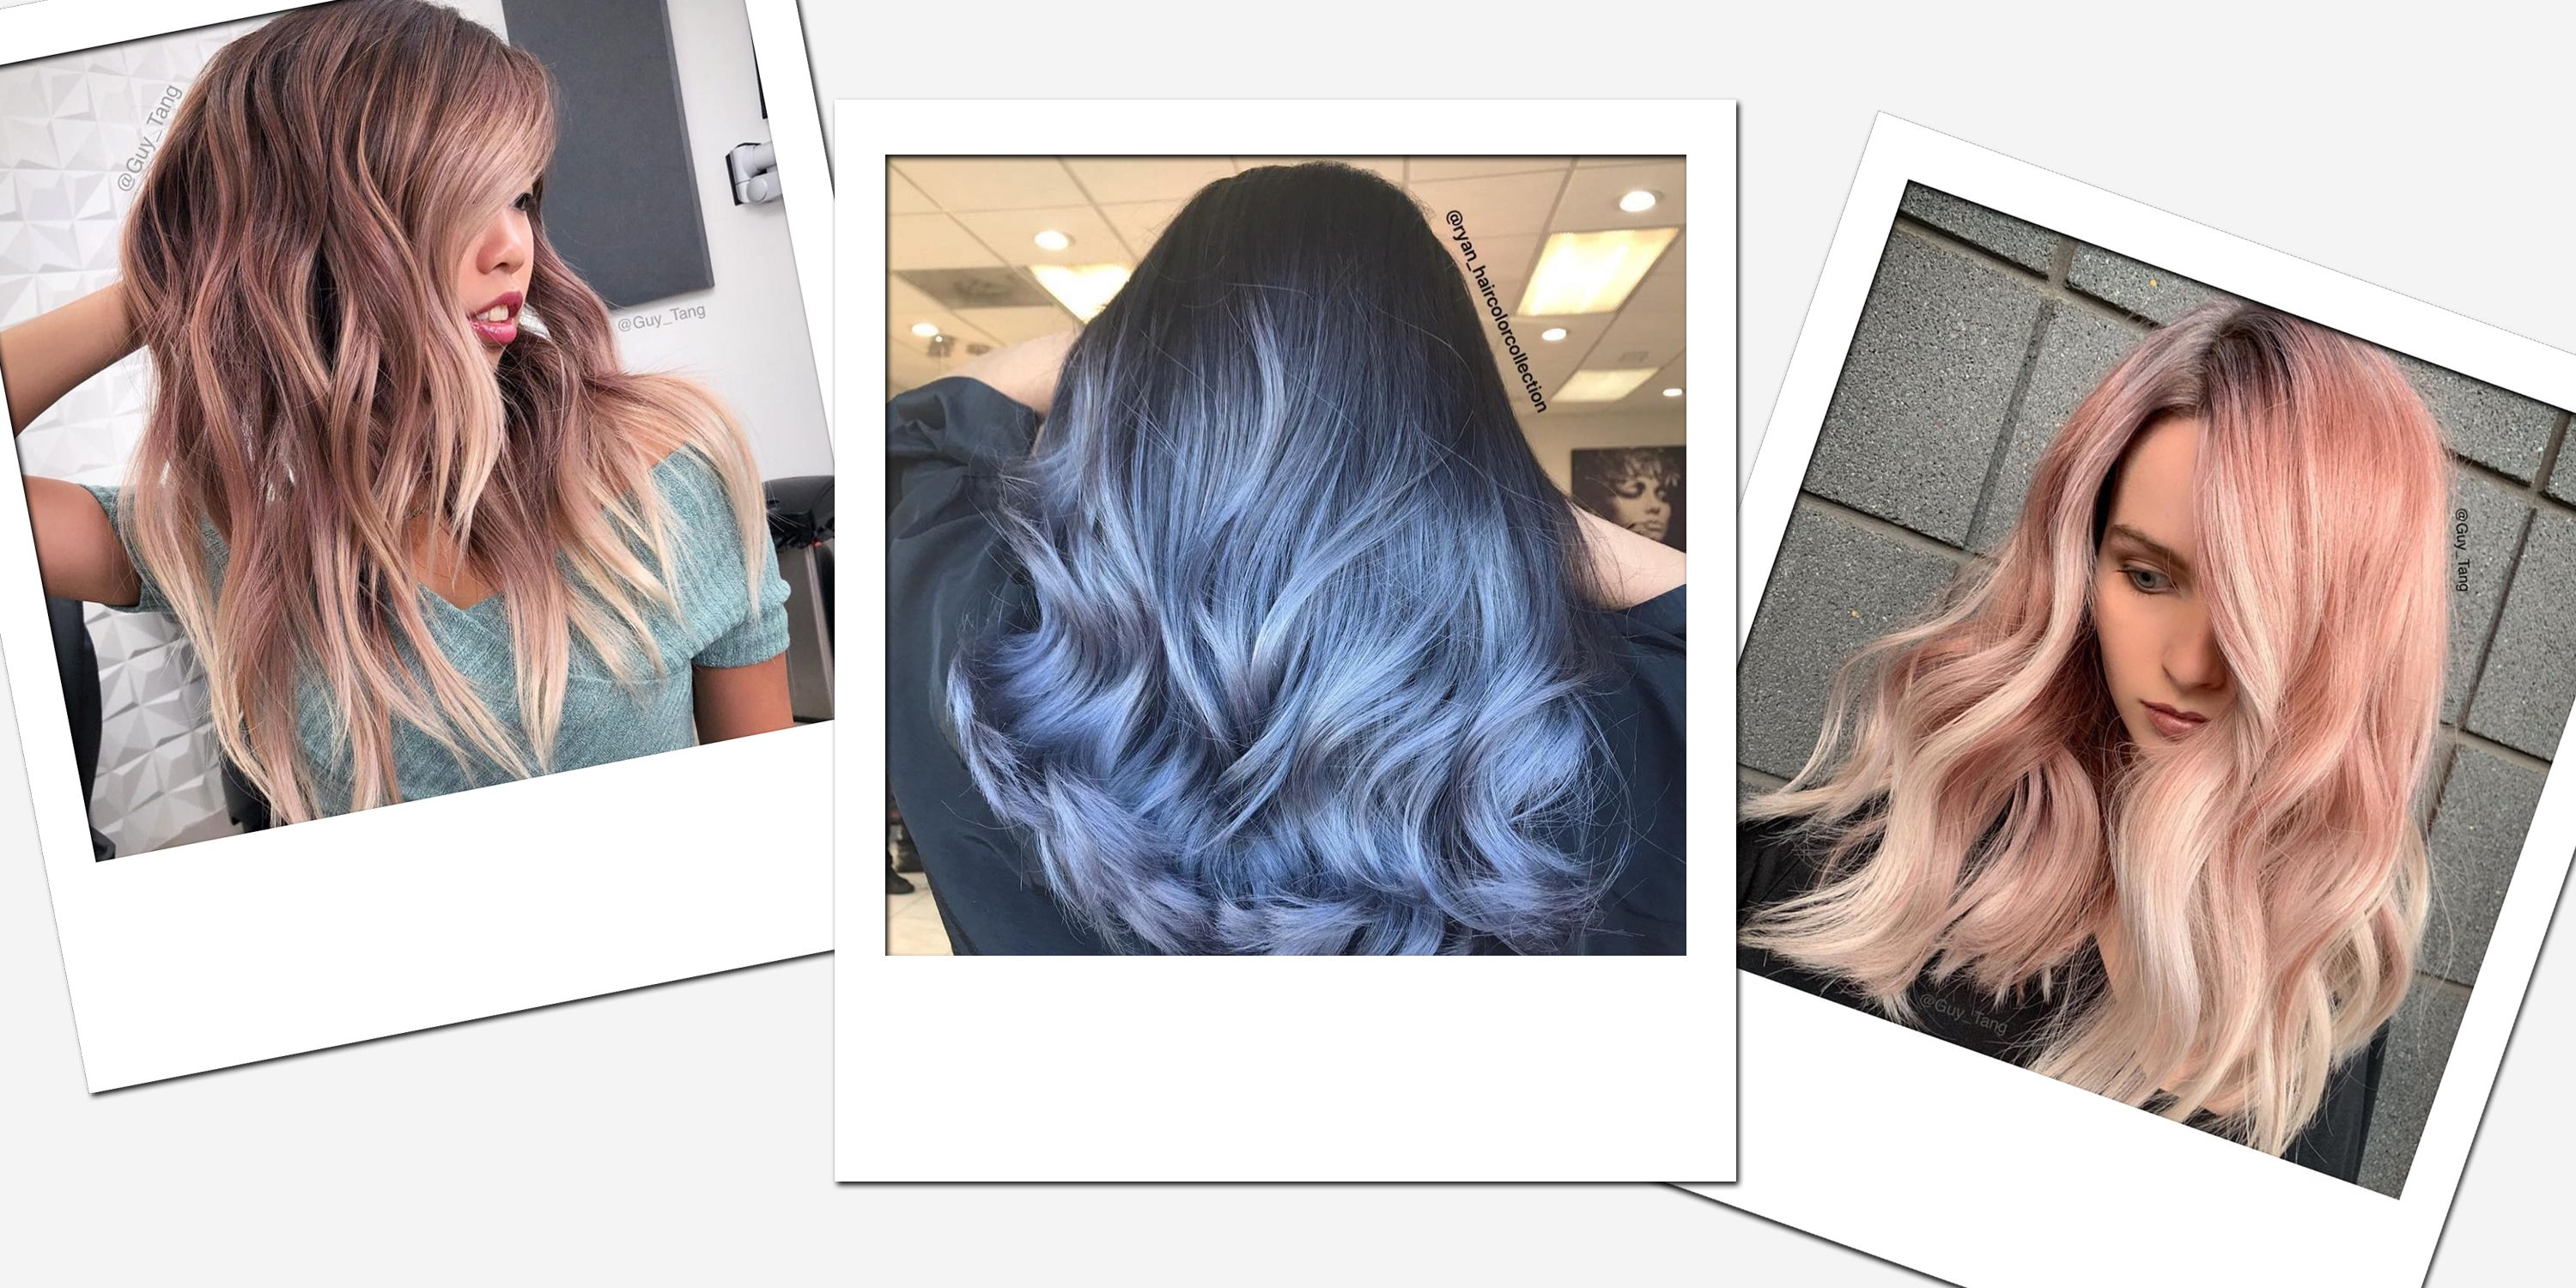 Ombre Look The Ombré Hair Colors That Will Be Huge This Year Ombre Hair Dye